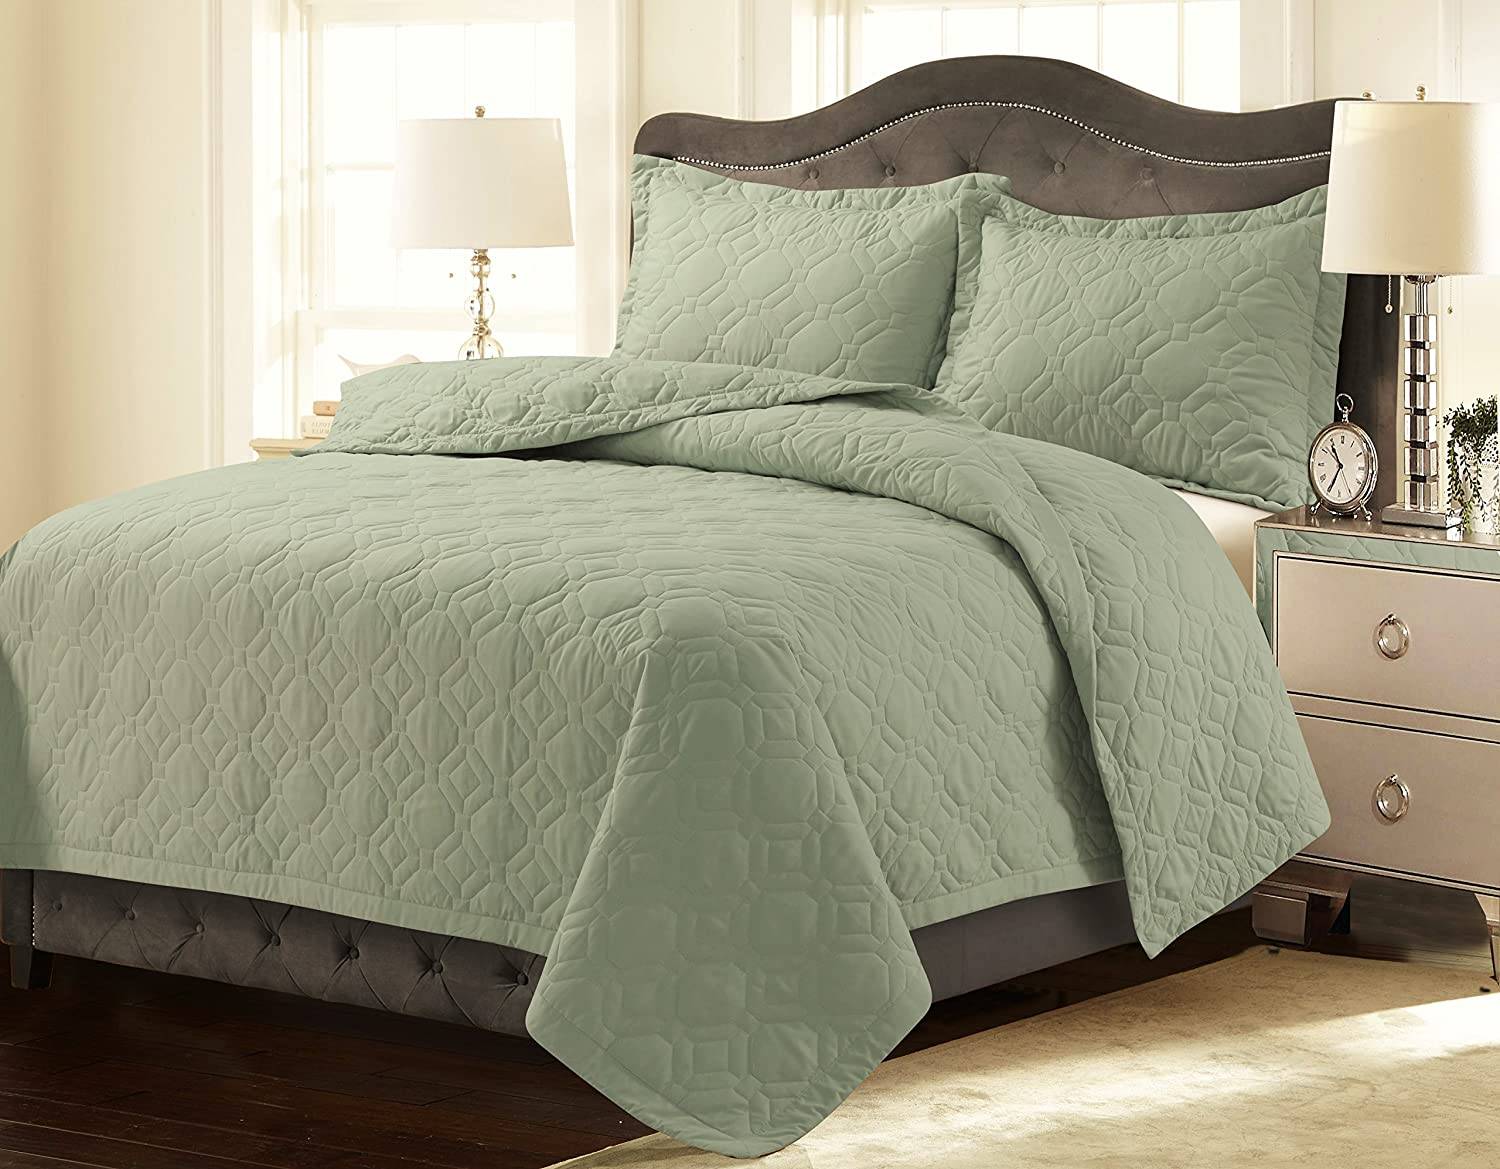 Tribeca Living LYONQUILTKISA Lyon Solid Oversized Geometric Quilt Set, King, Sage Green